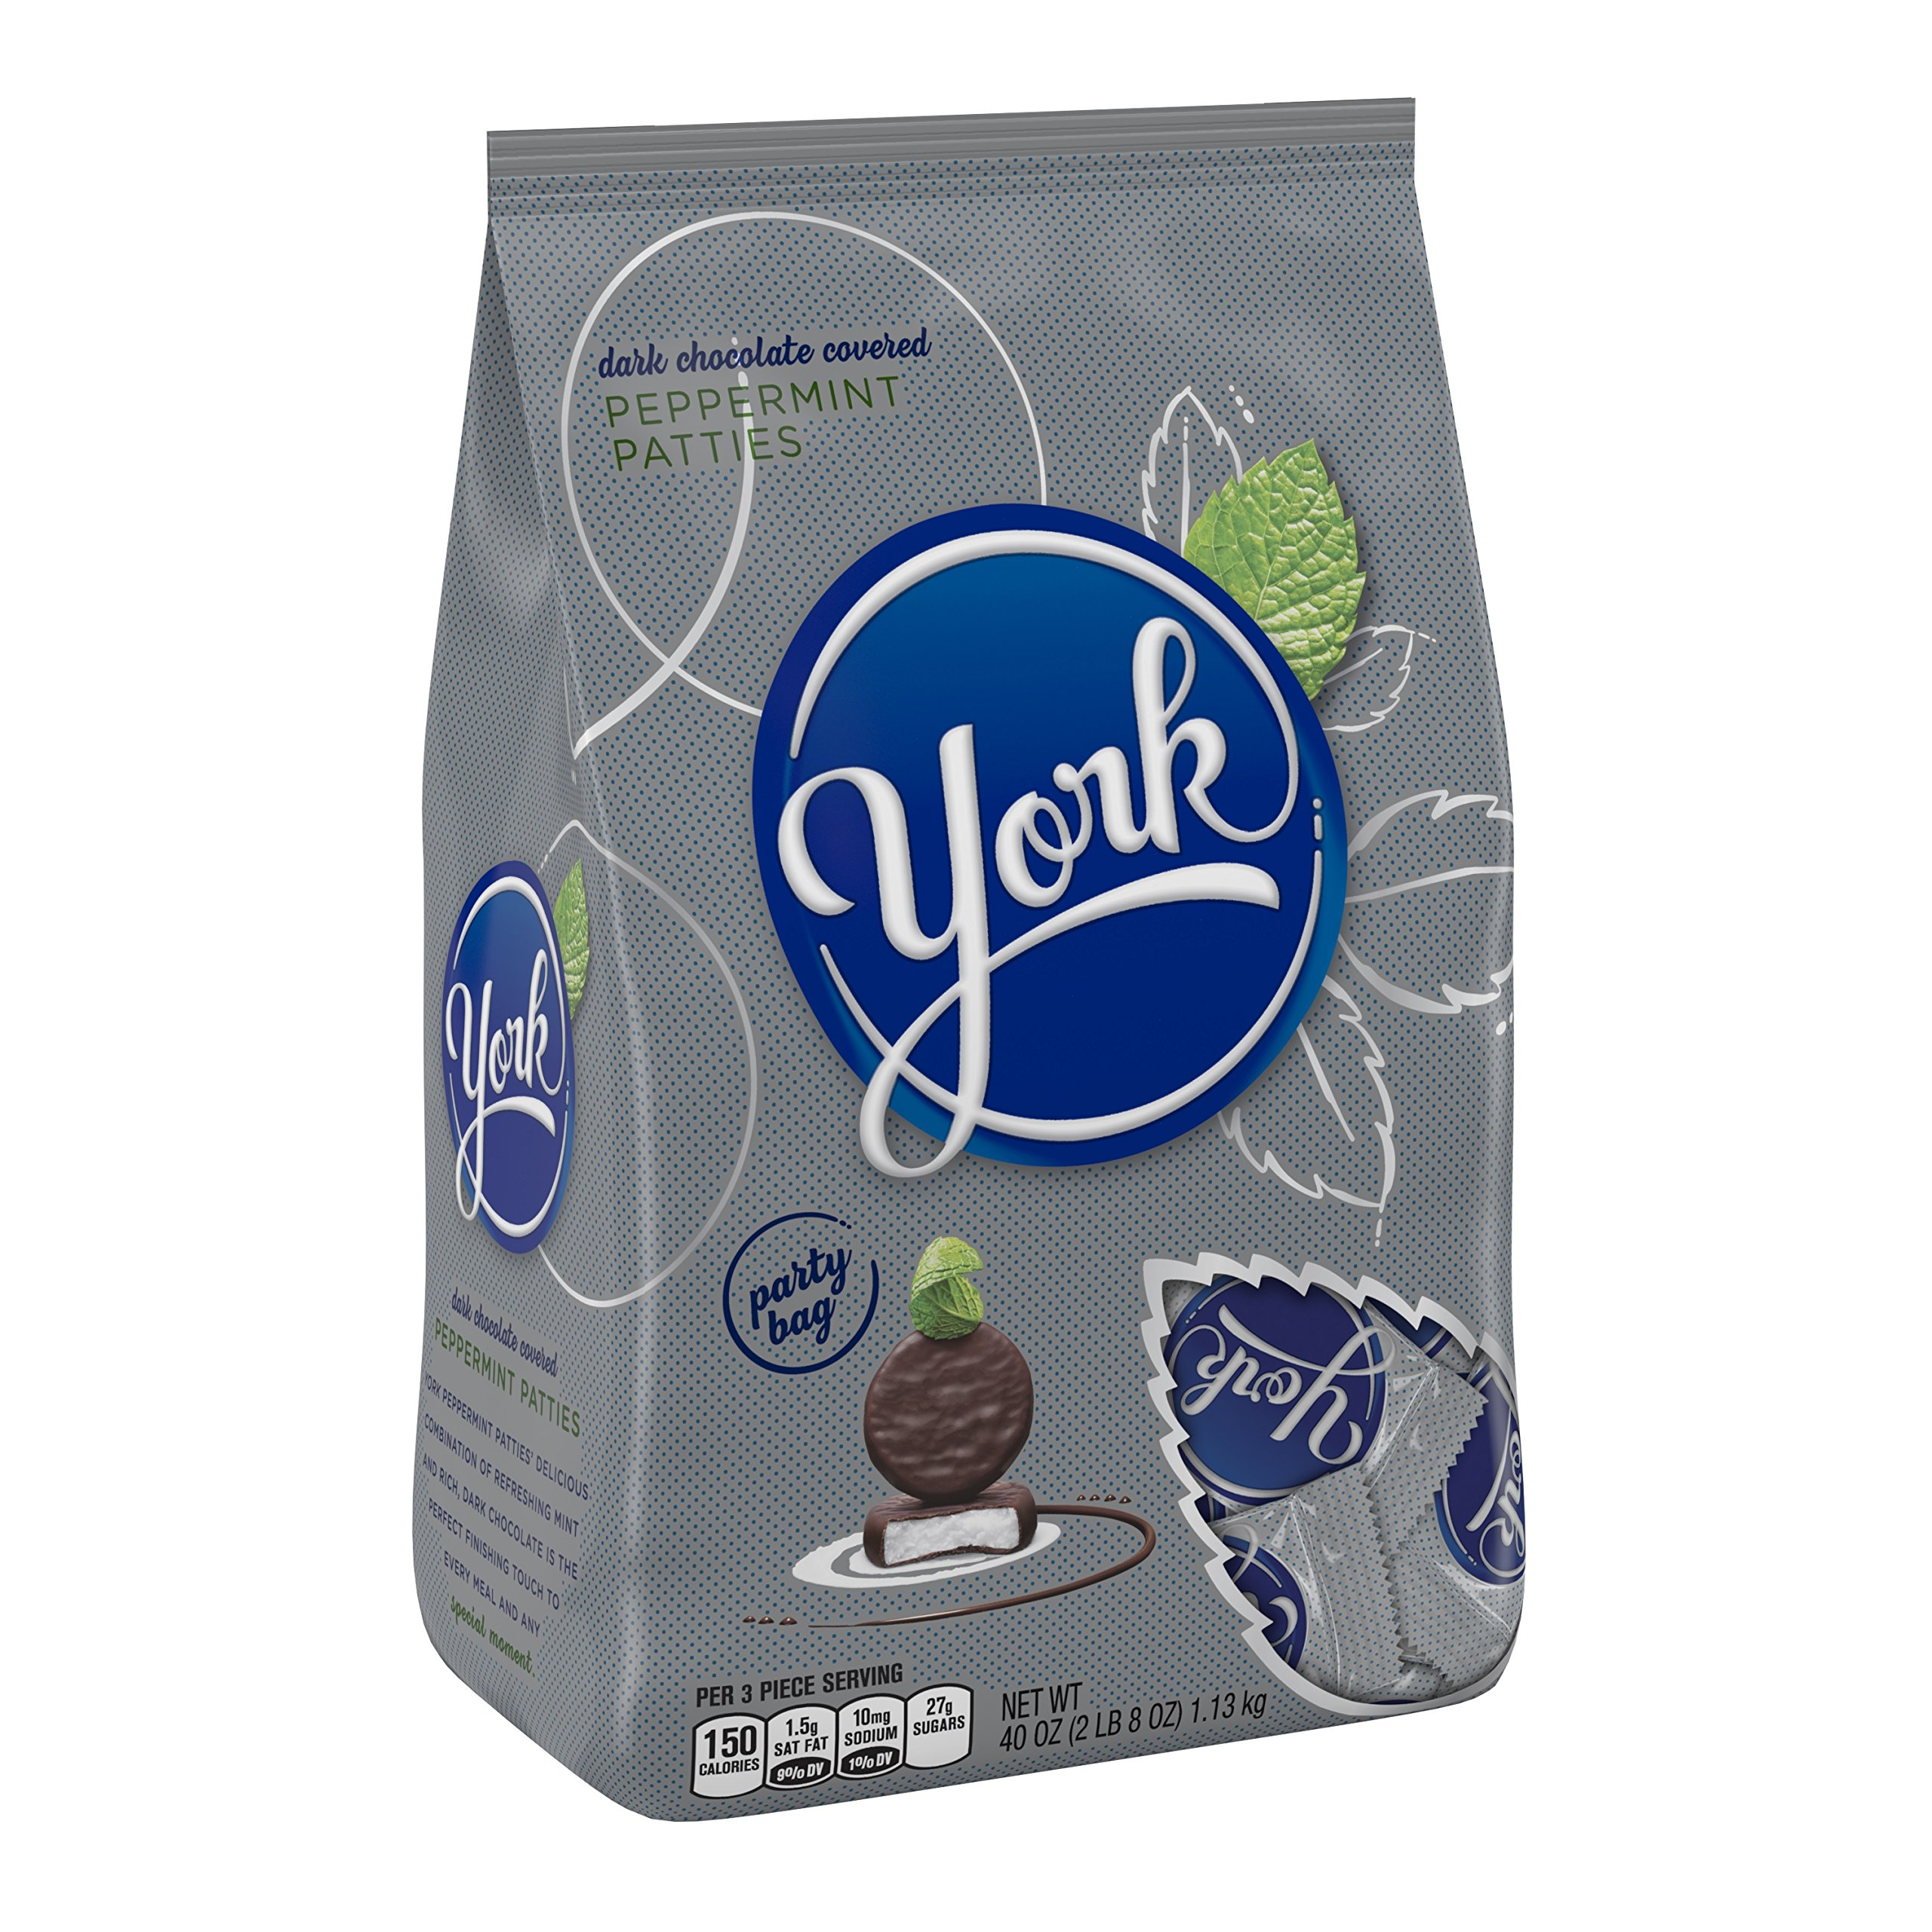 YORK Dark Chocolate Peppermint Patties, 40 Ounce Bulk Candy